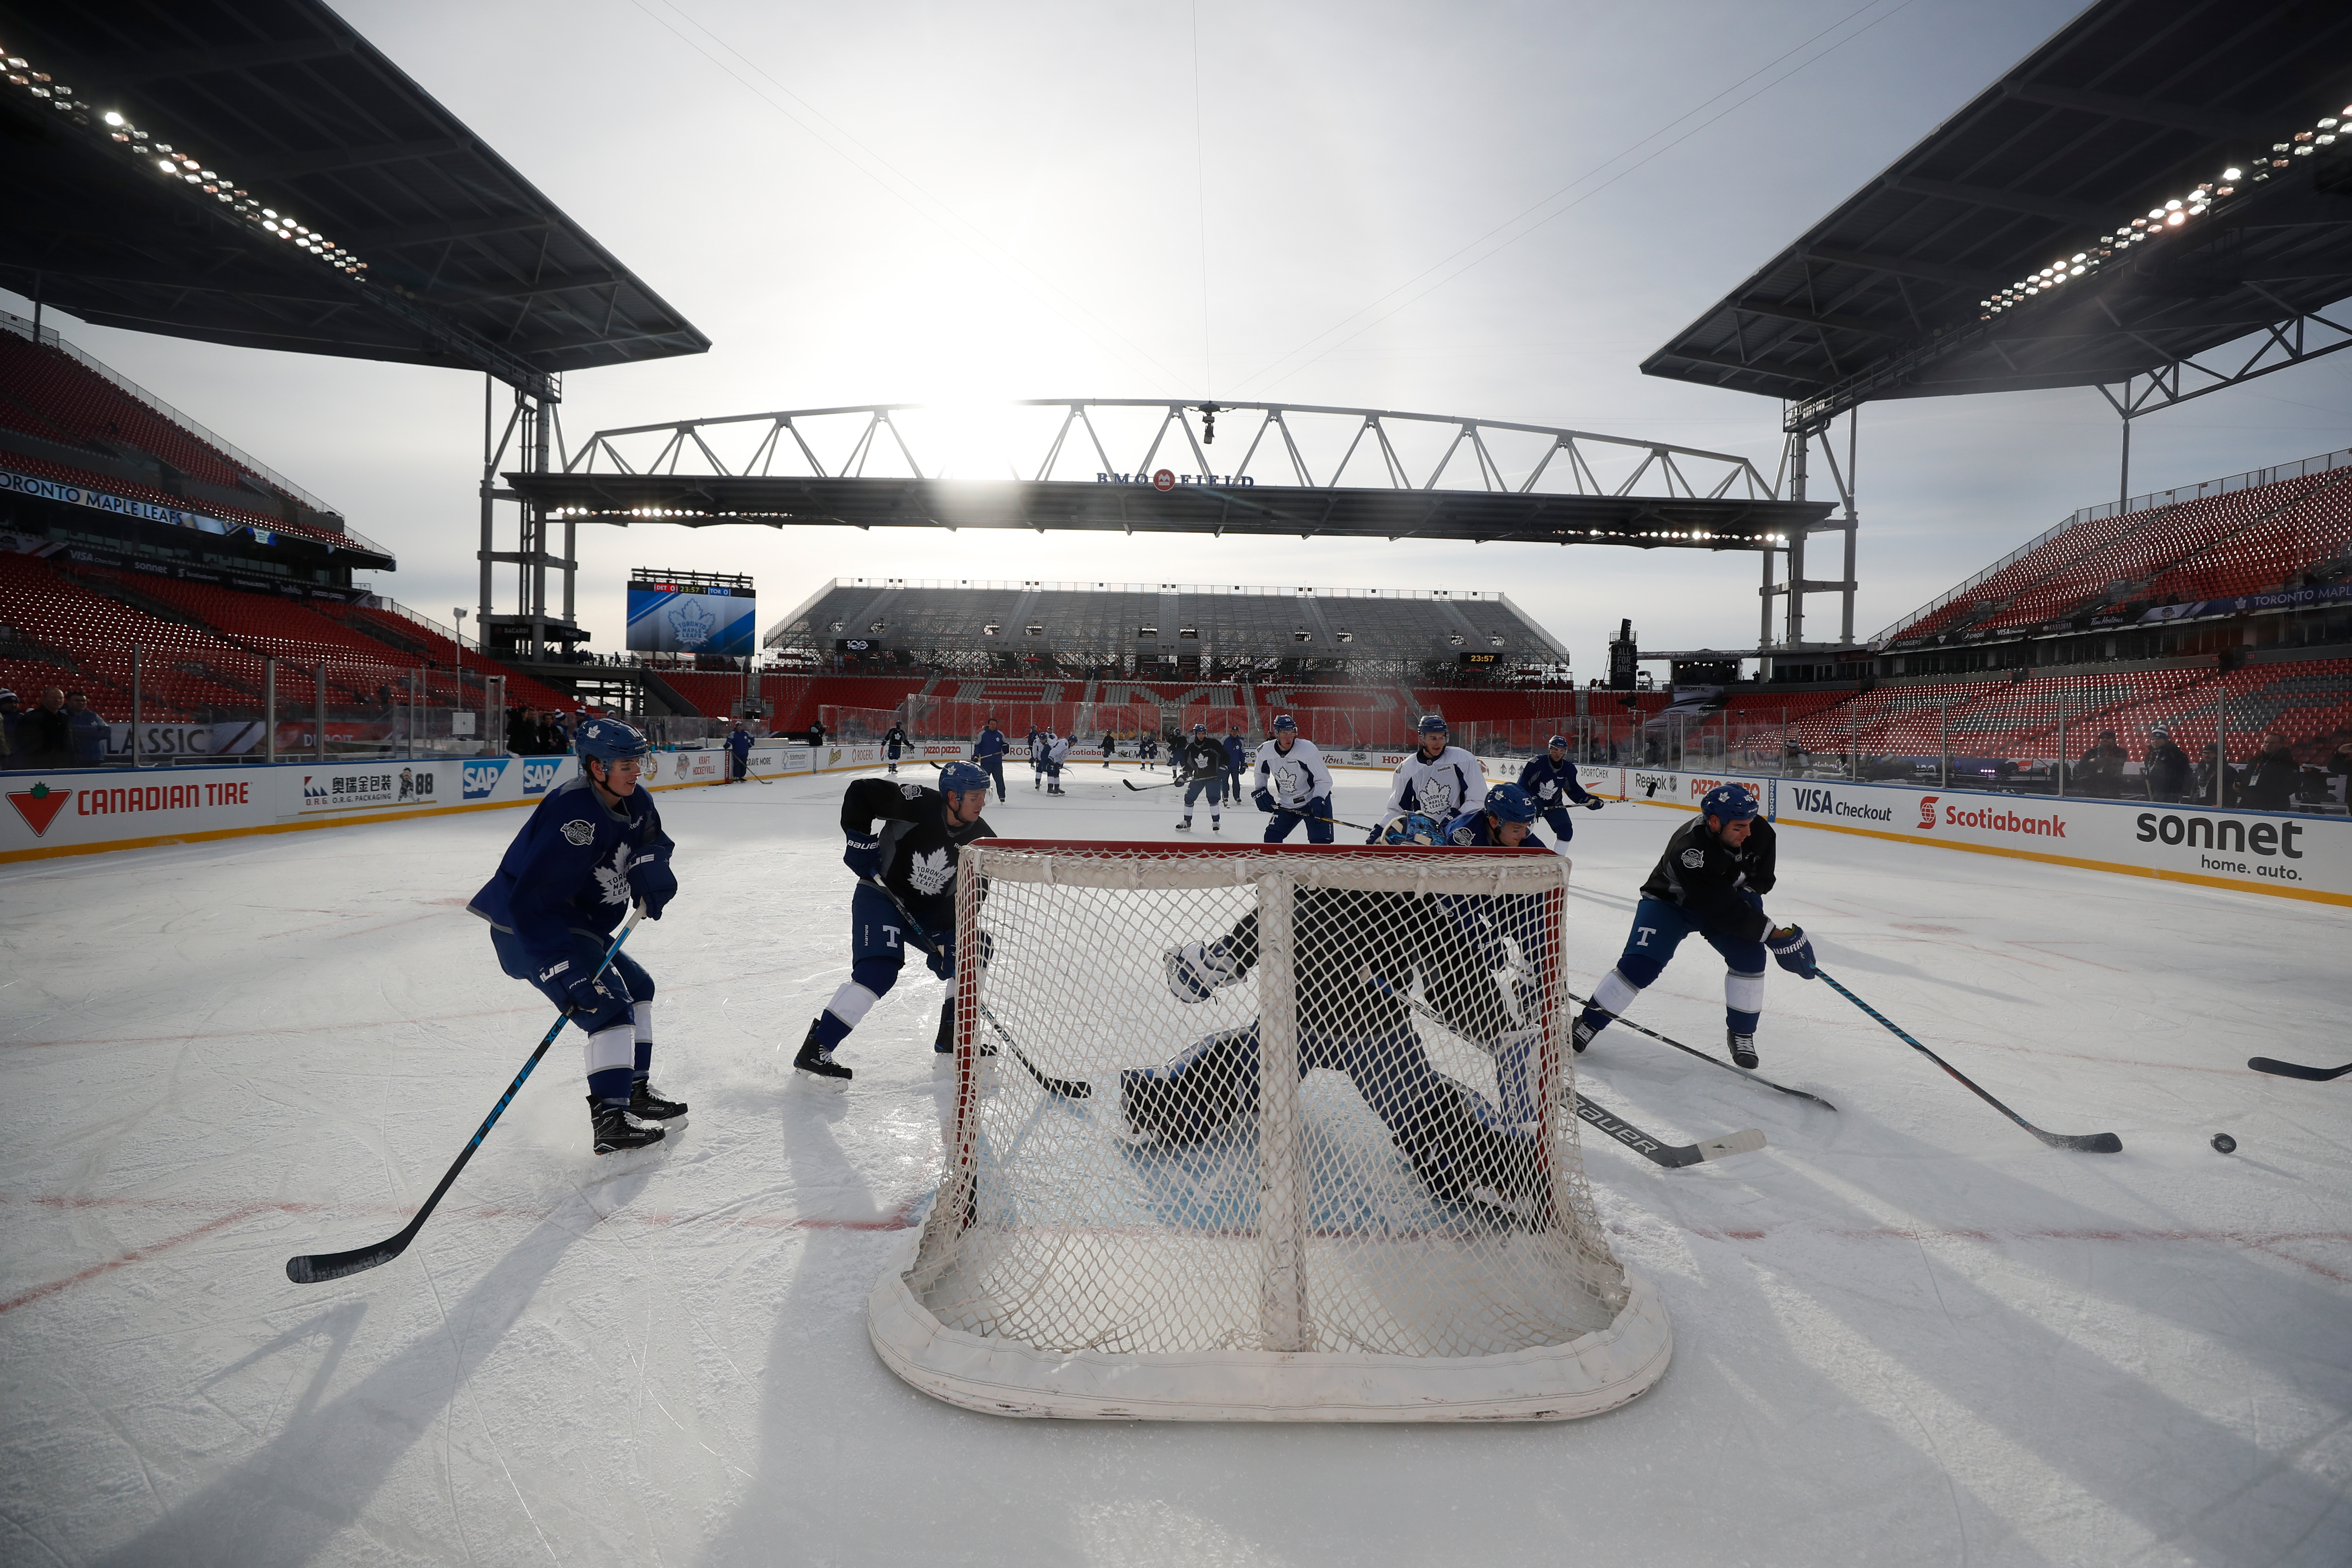 2017 Scotiabank NHL Centennial Classic - Maple Leafs Practice